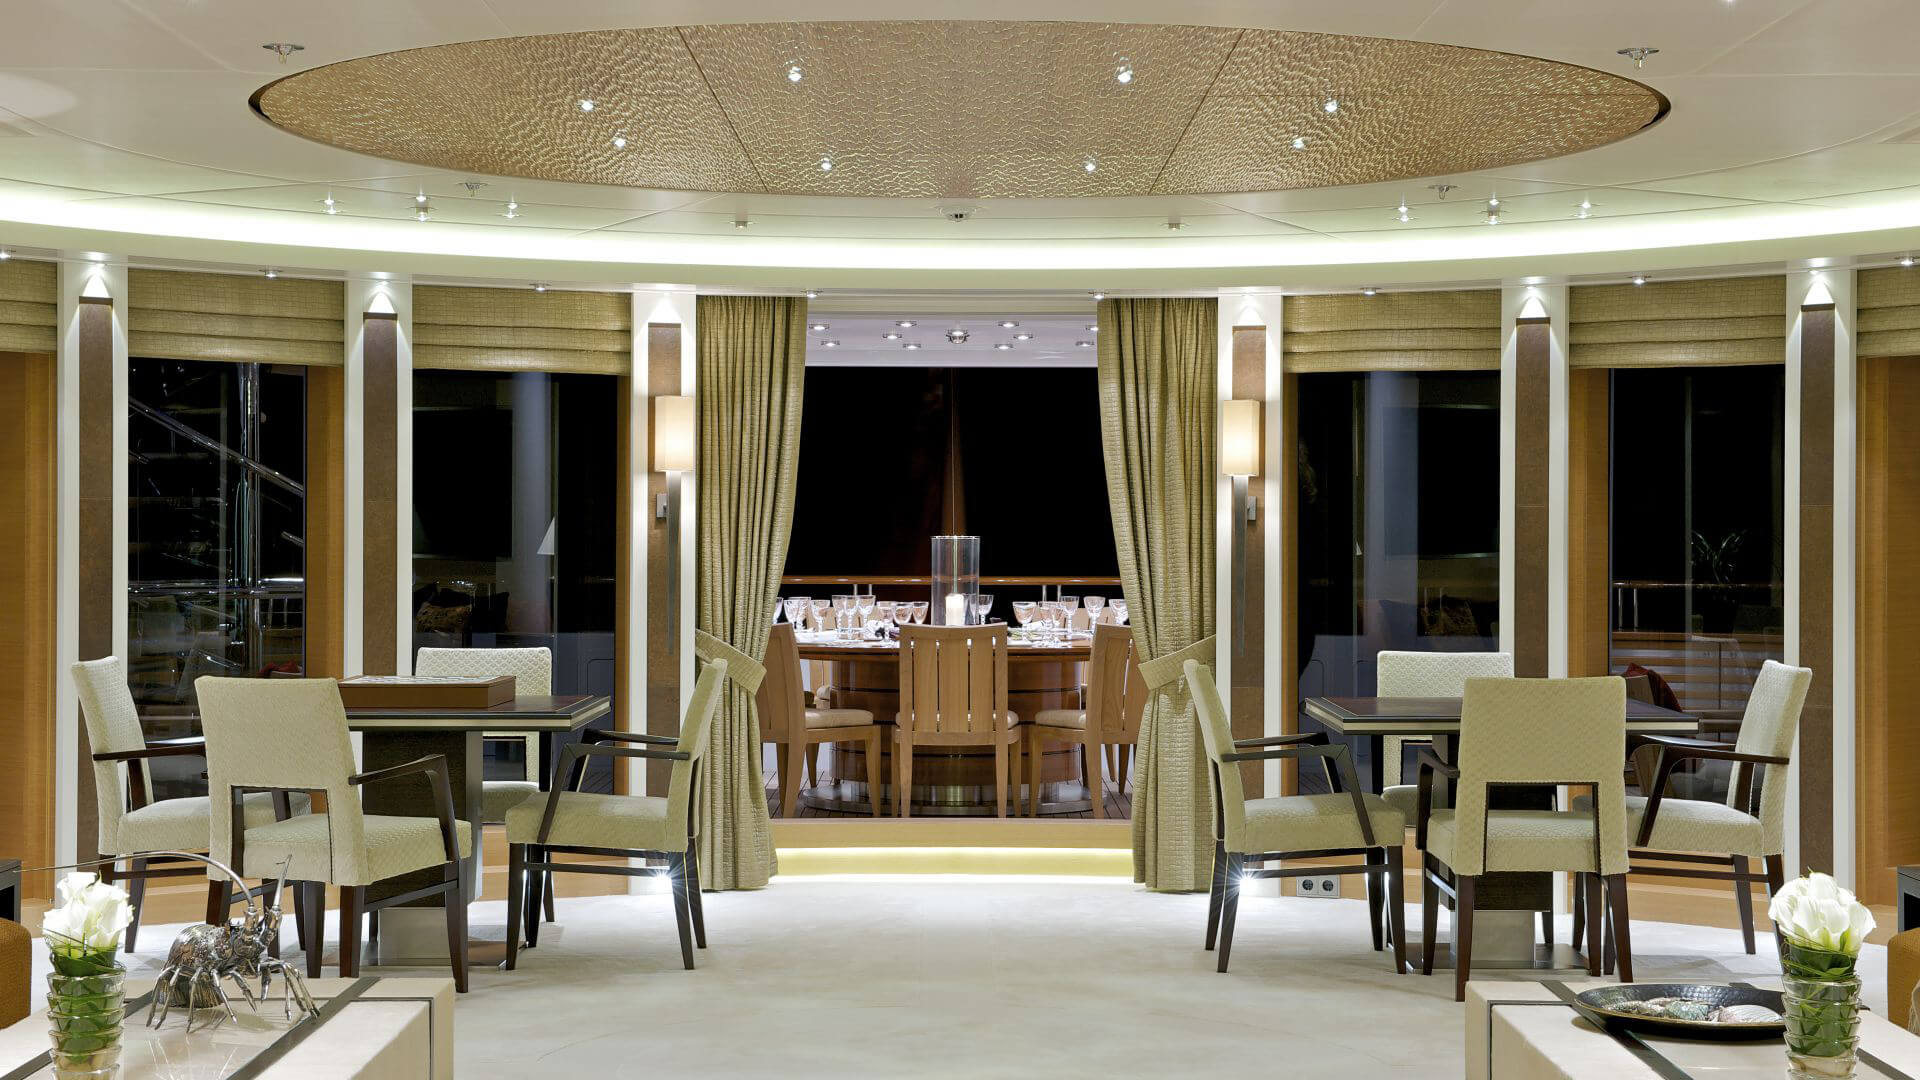 bsw yachteinrichter with yacht interior for dining room and outdoor area on luxury motor yacht